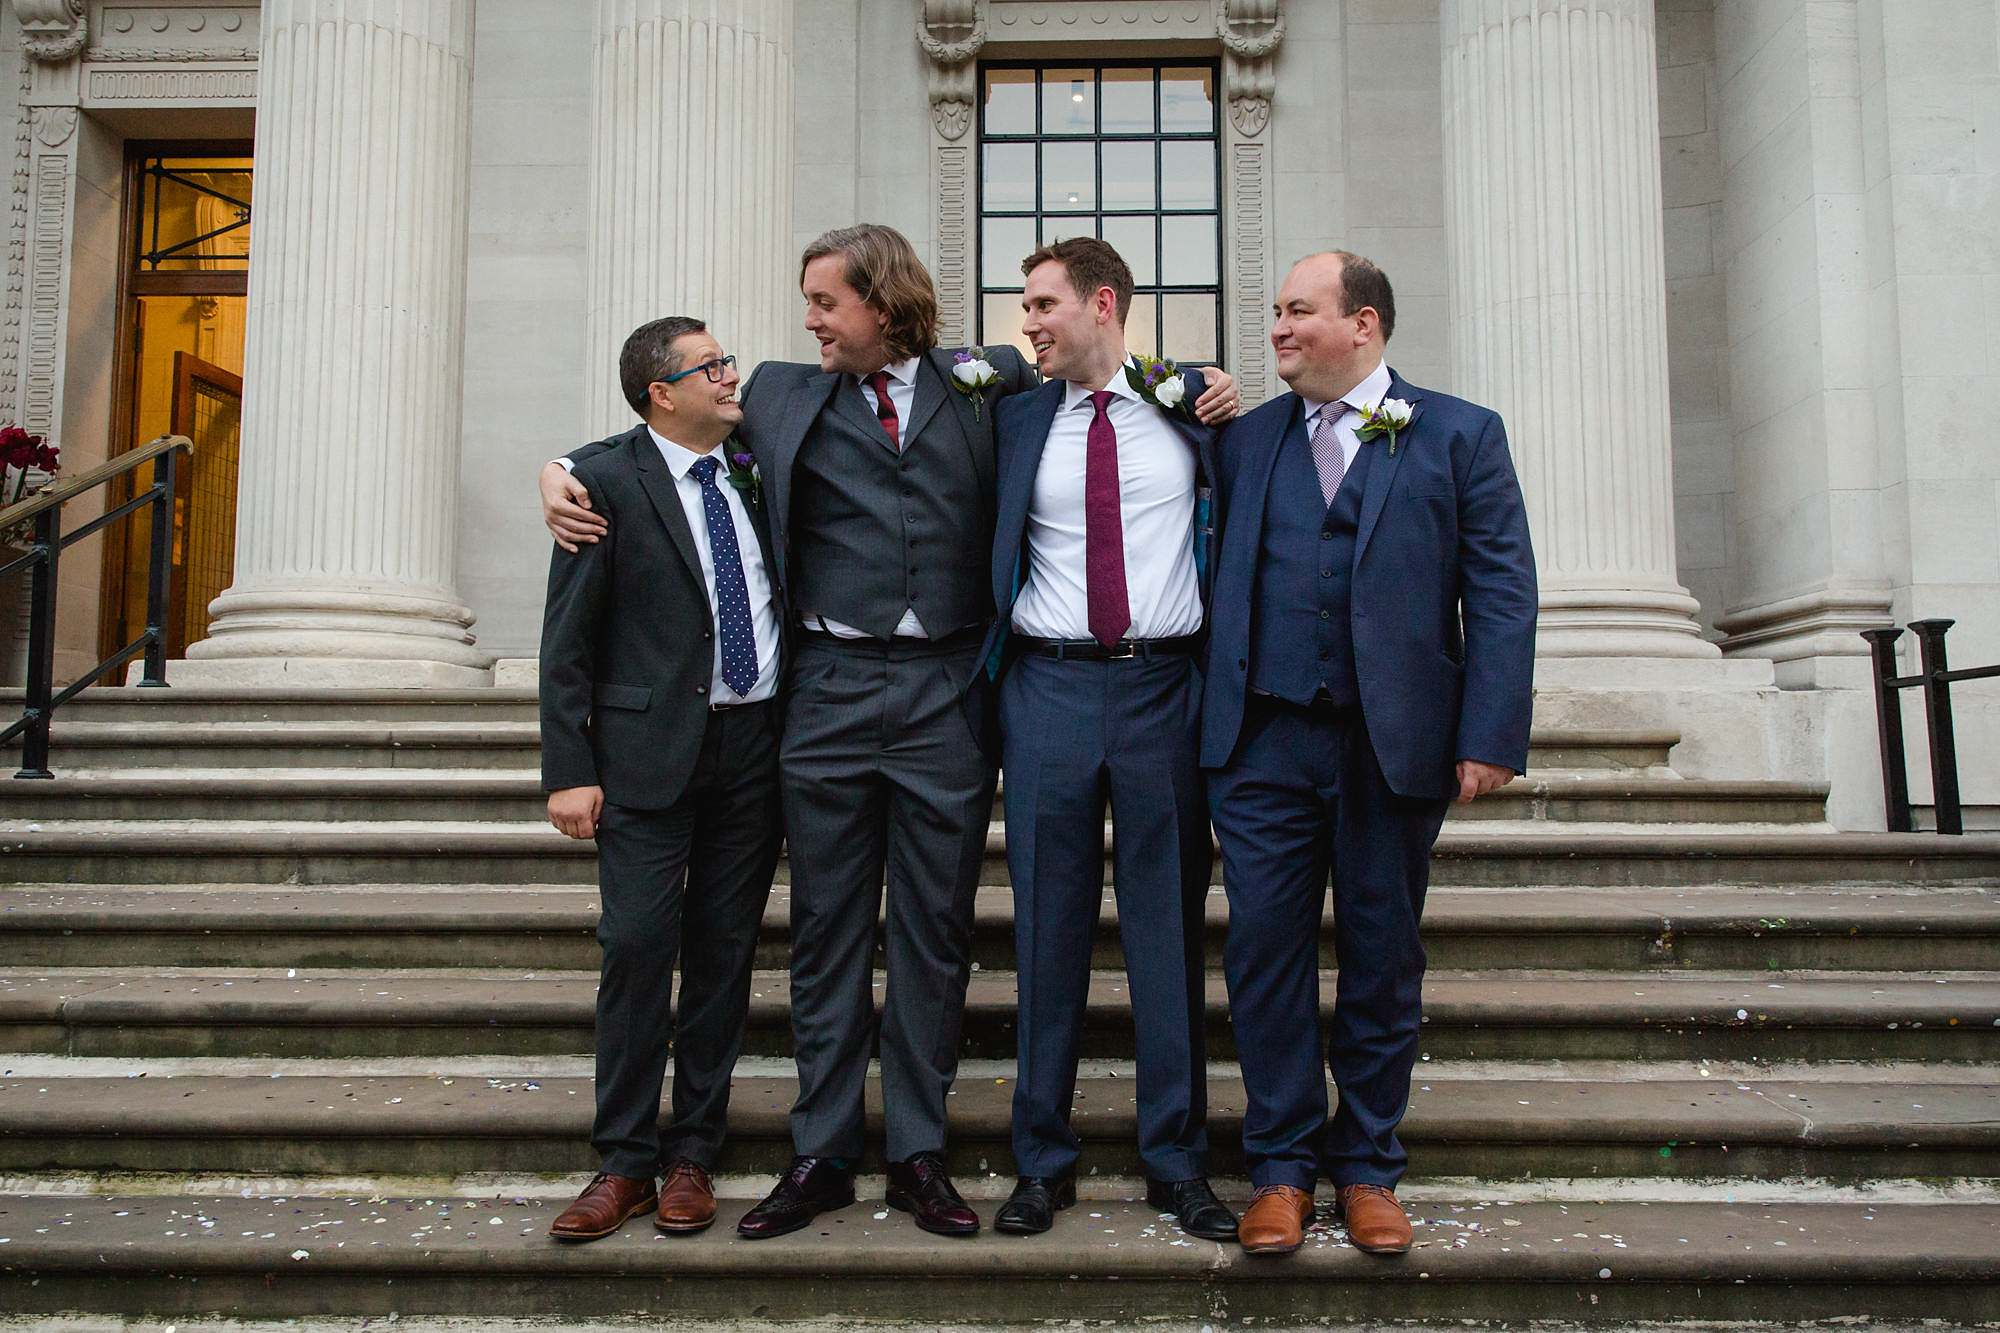 Old Marylebone Town Hall wedding photography groom and groomsmen